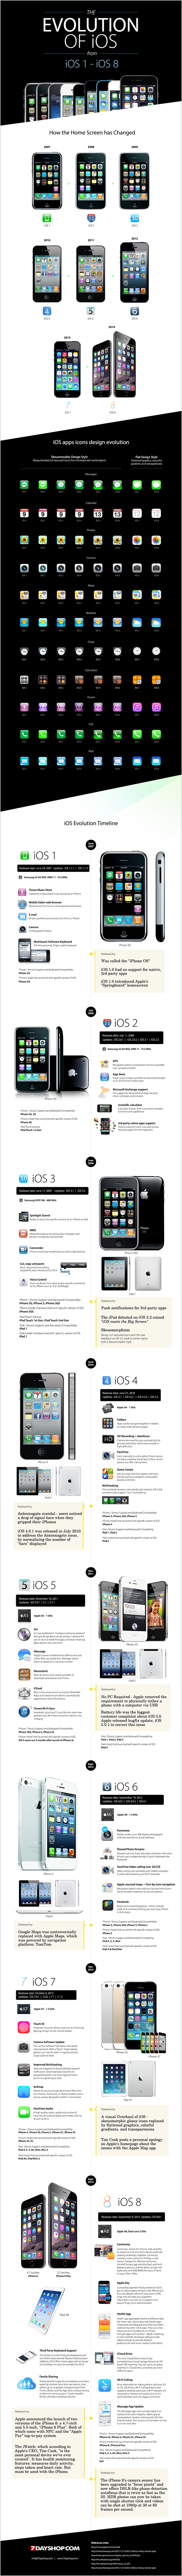 The-Evolution-of-iOS-1-to-8_736px